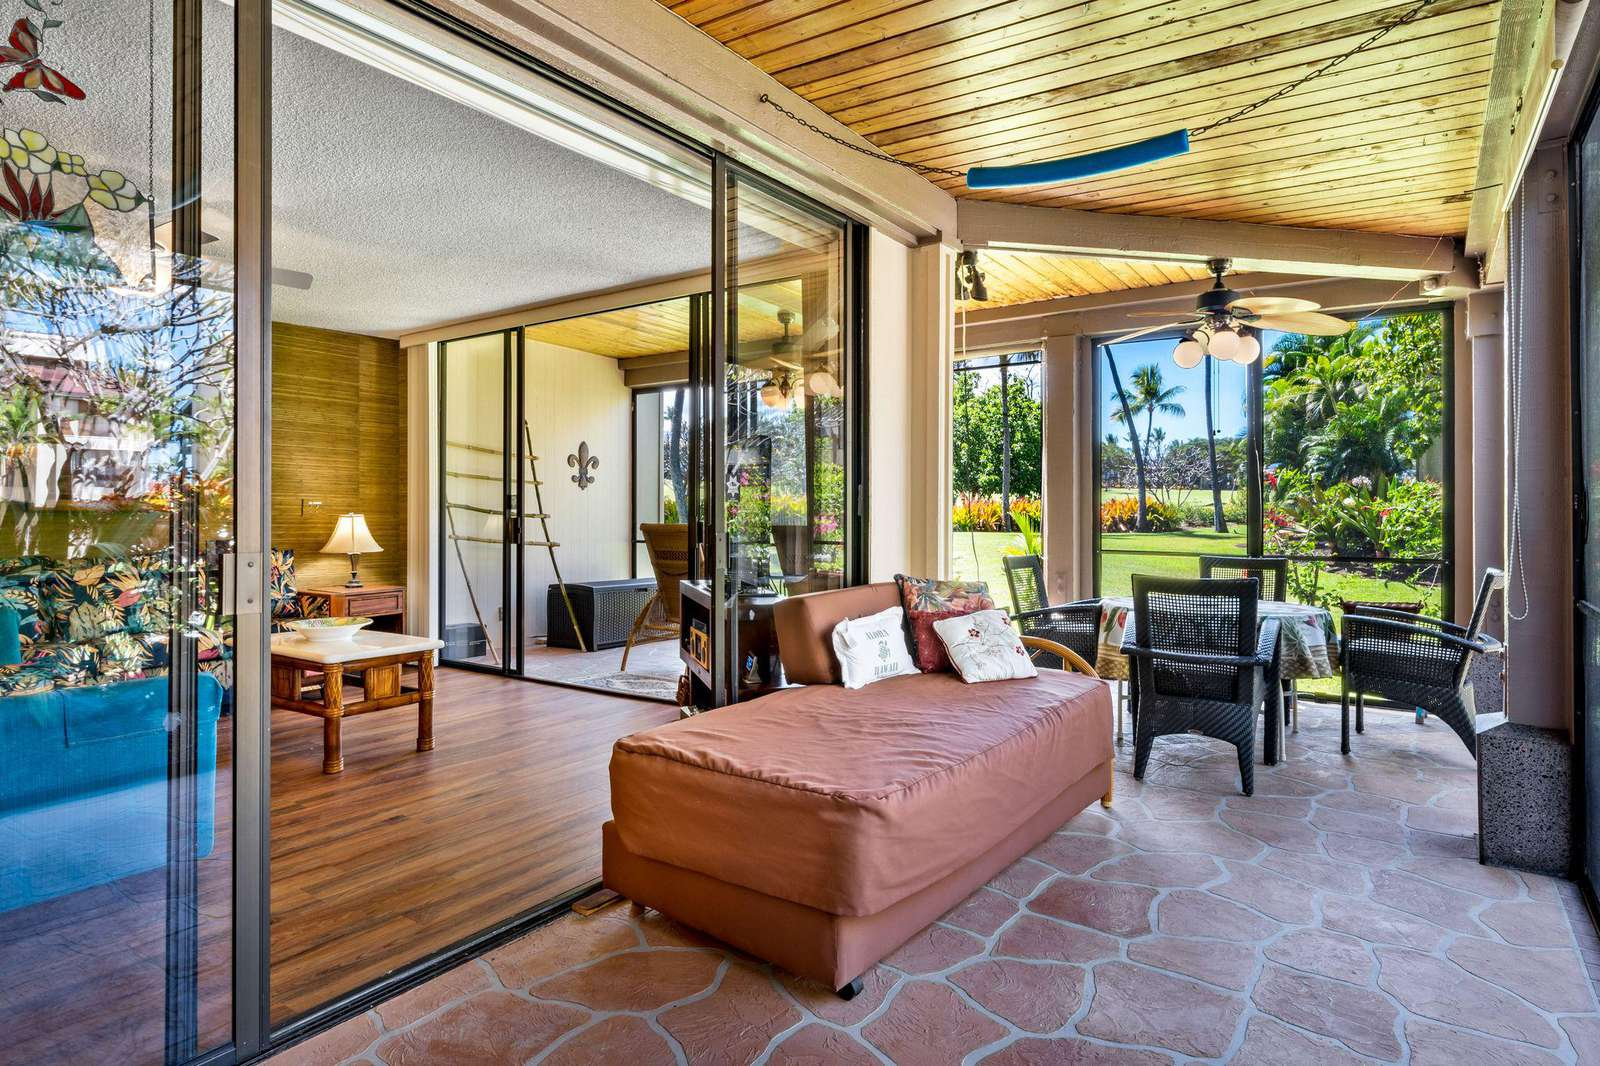 This lanai adds a huge living area to the condo home.